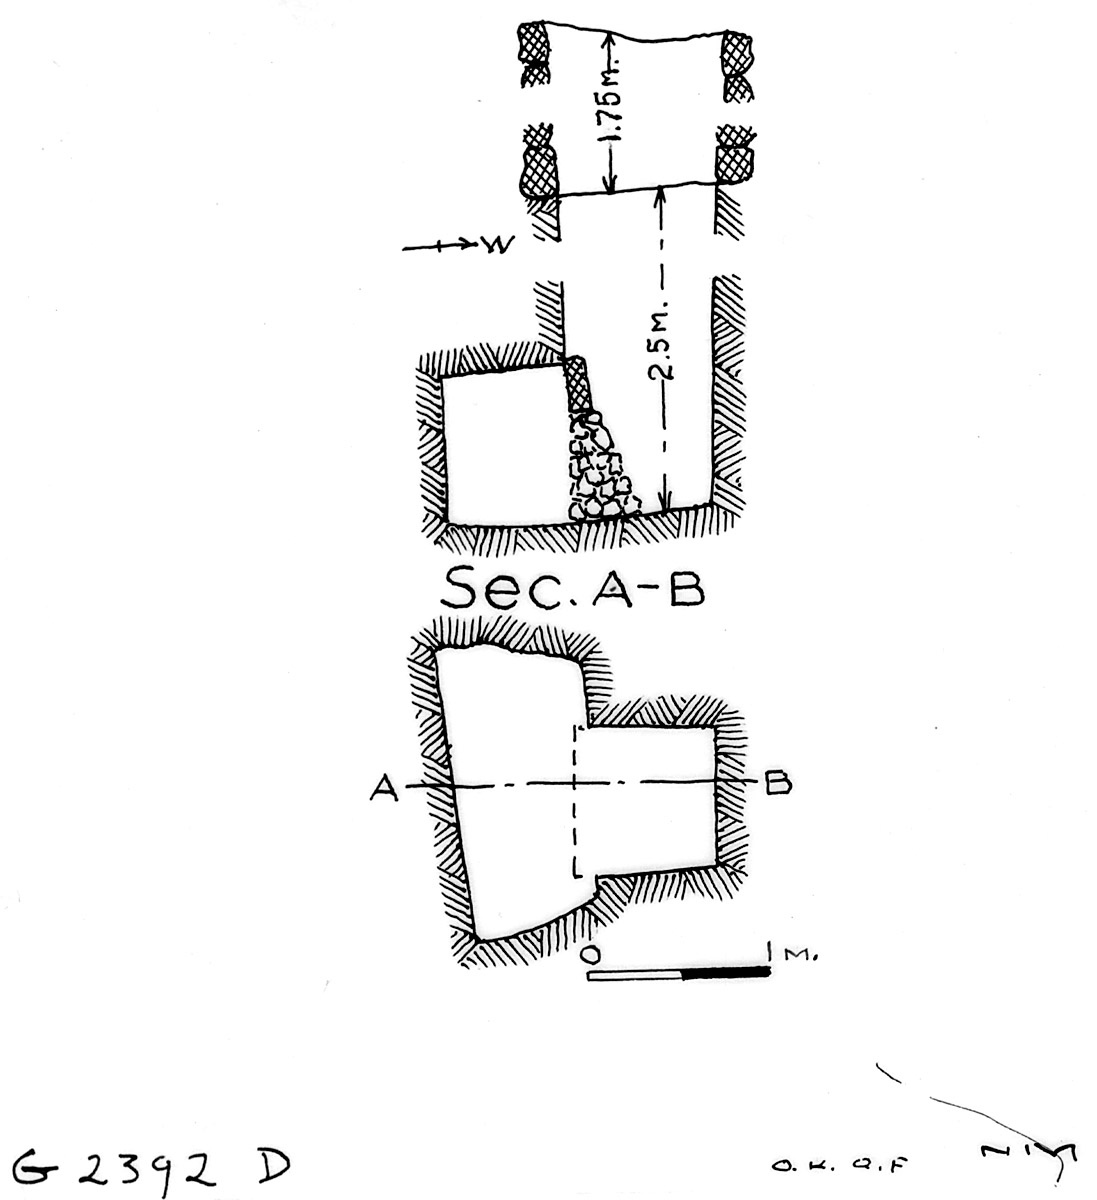 Maps and plans: G 2392, Shaft D